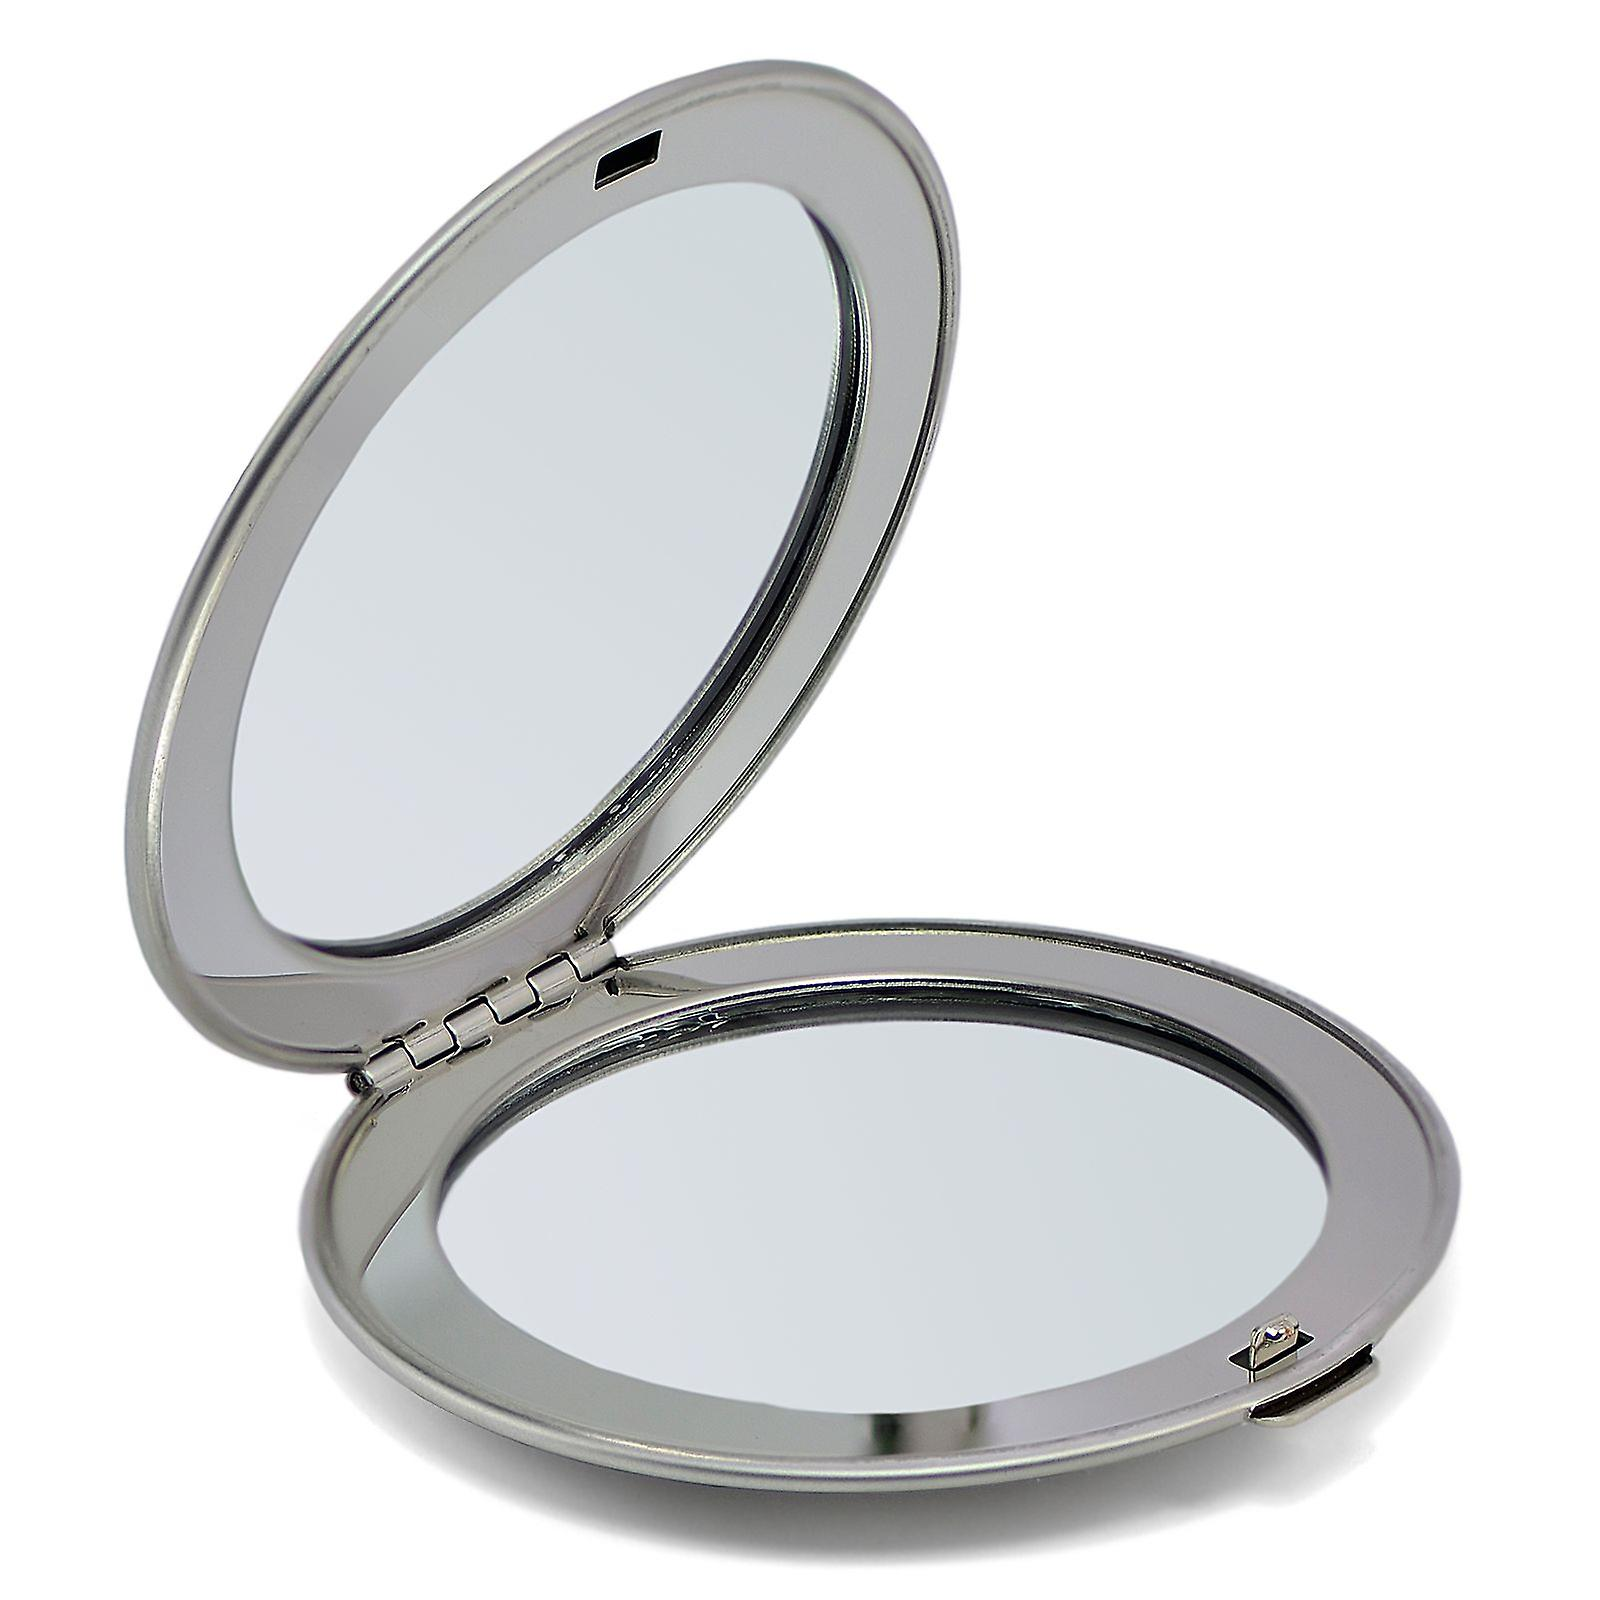 Design compact mirror ACS-13